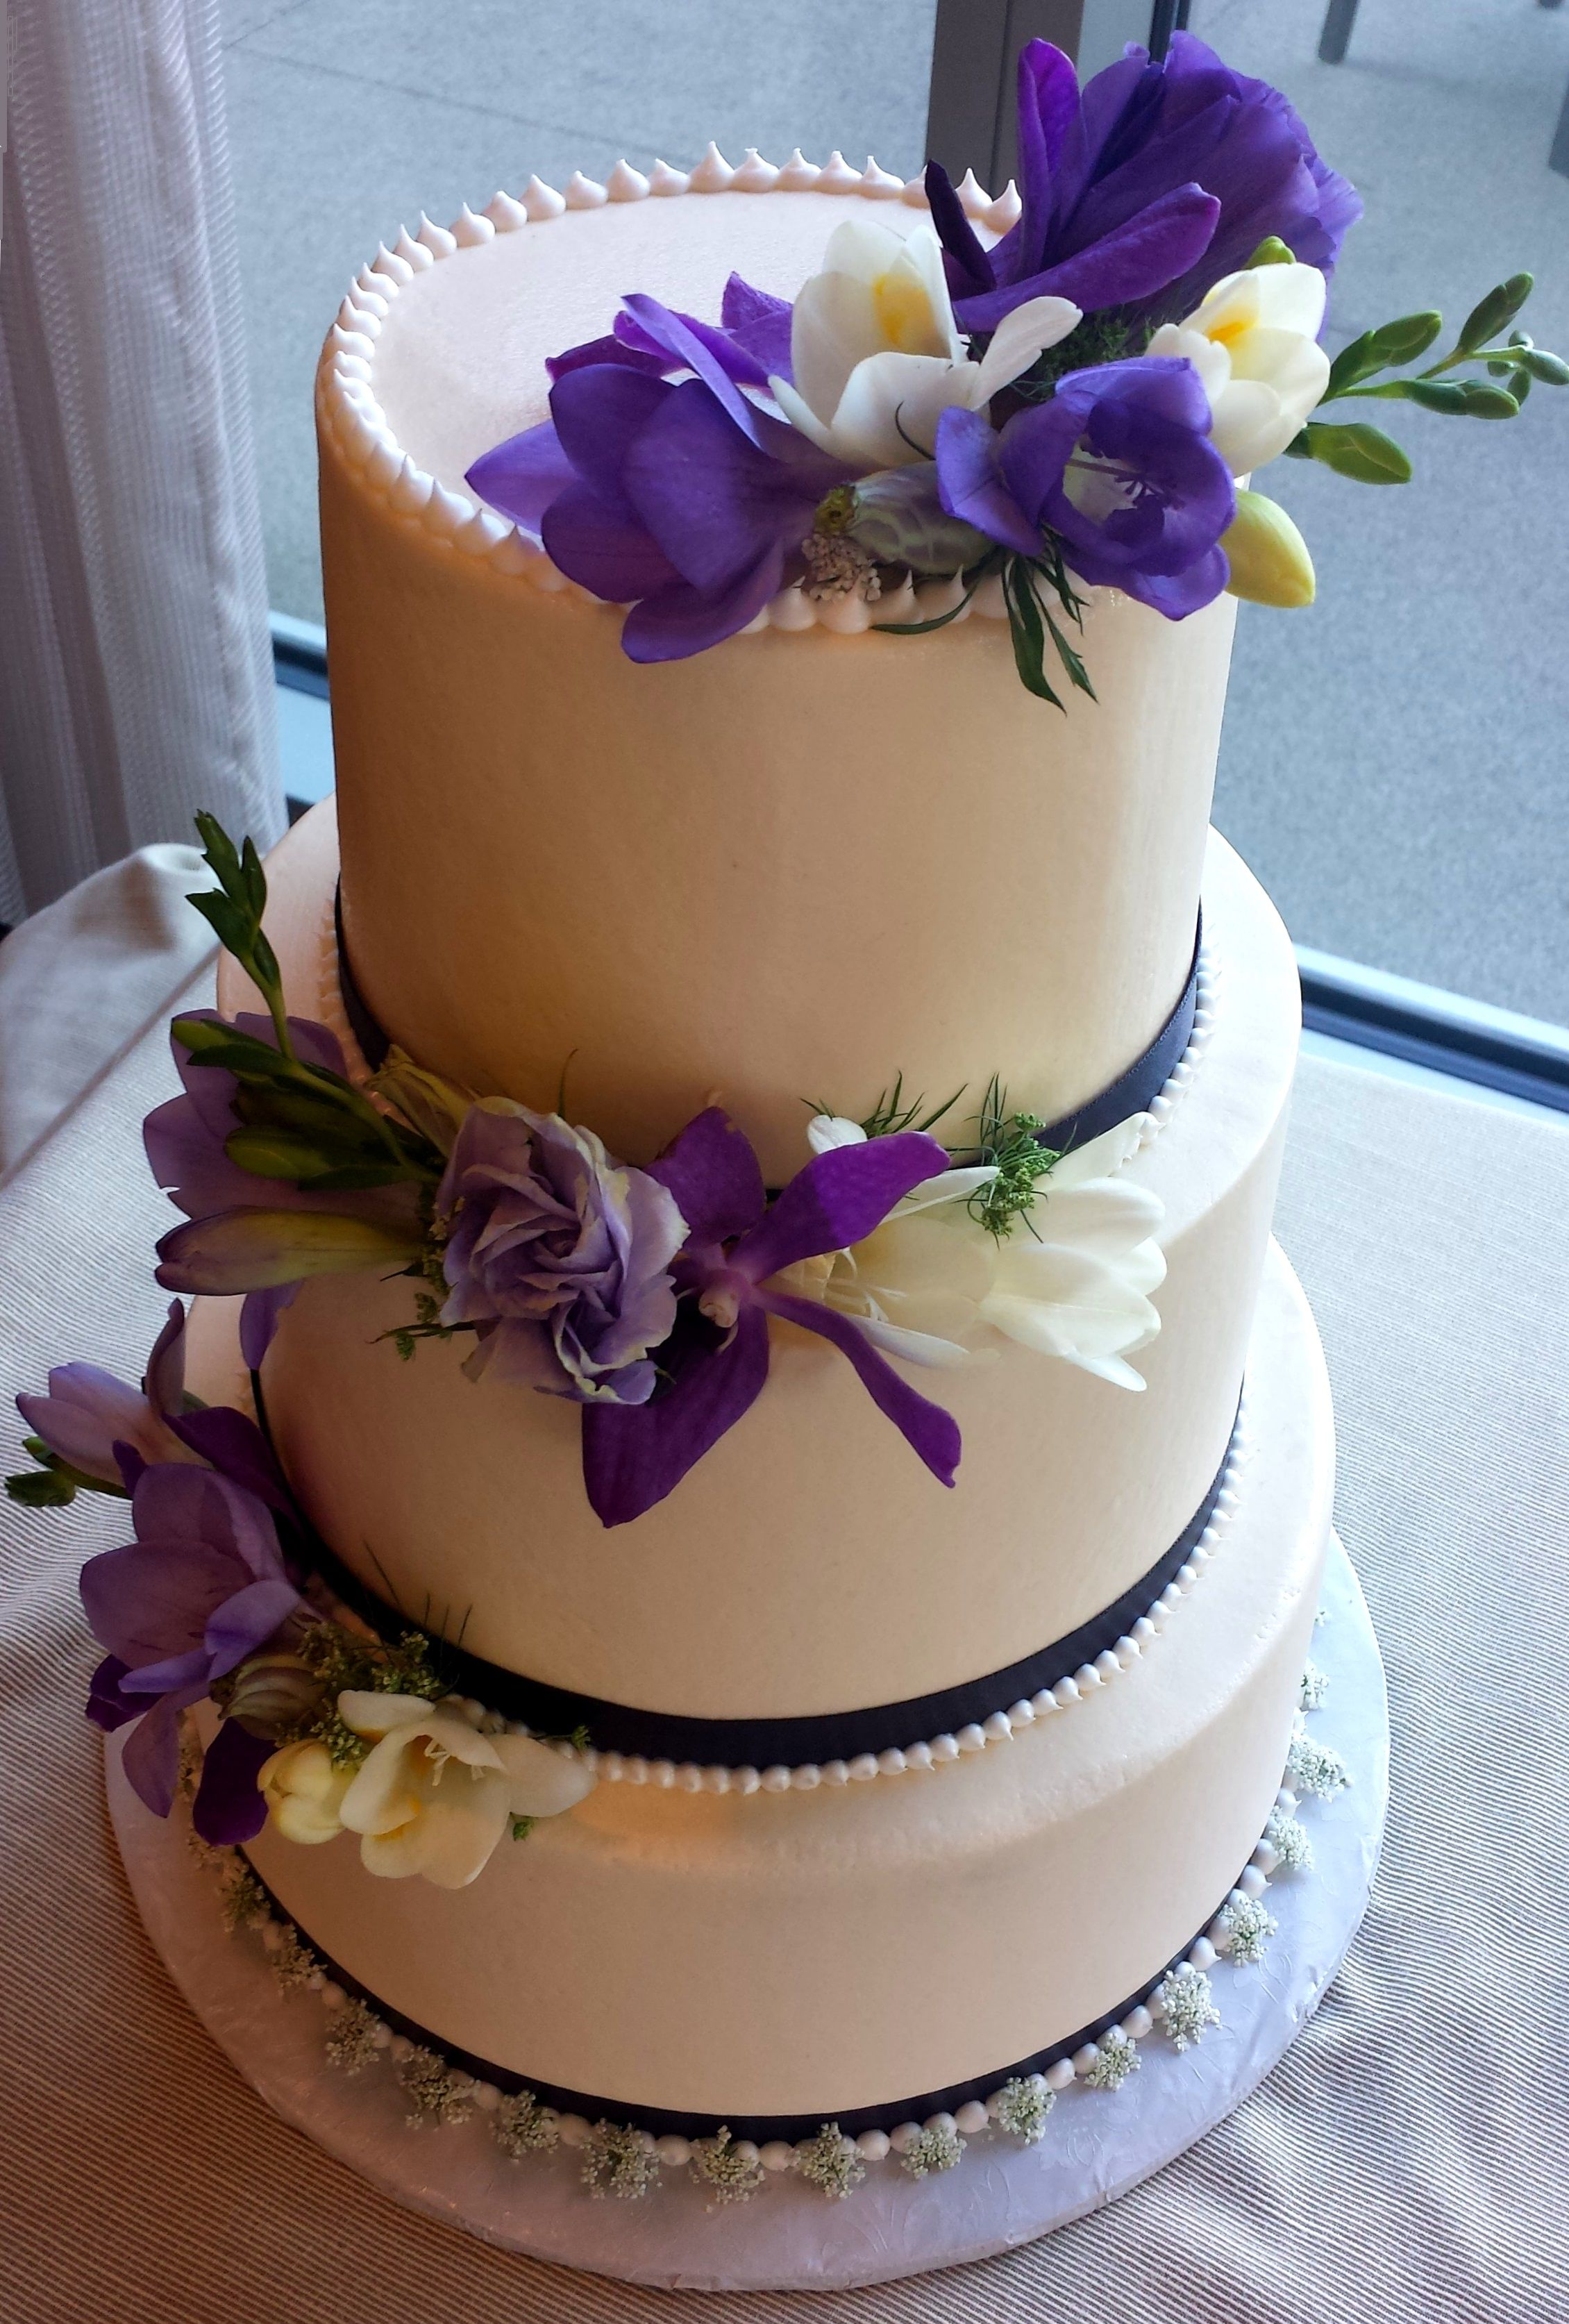 Butter cream wedding cake with with flower accents. Lake